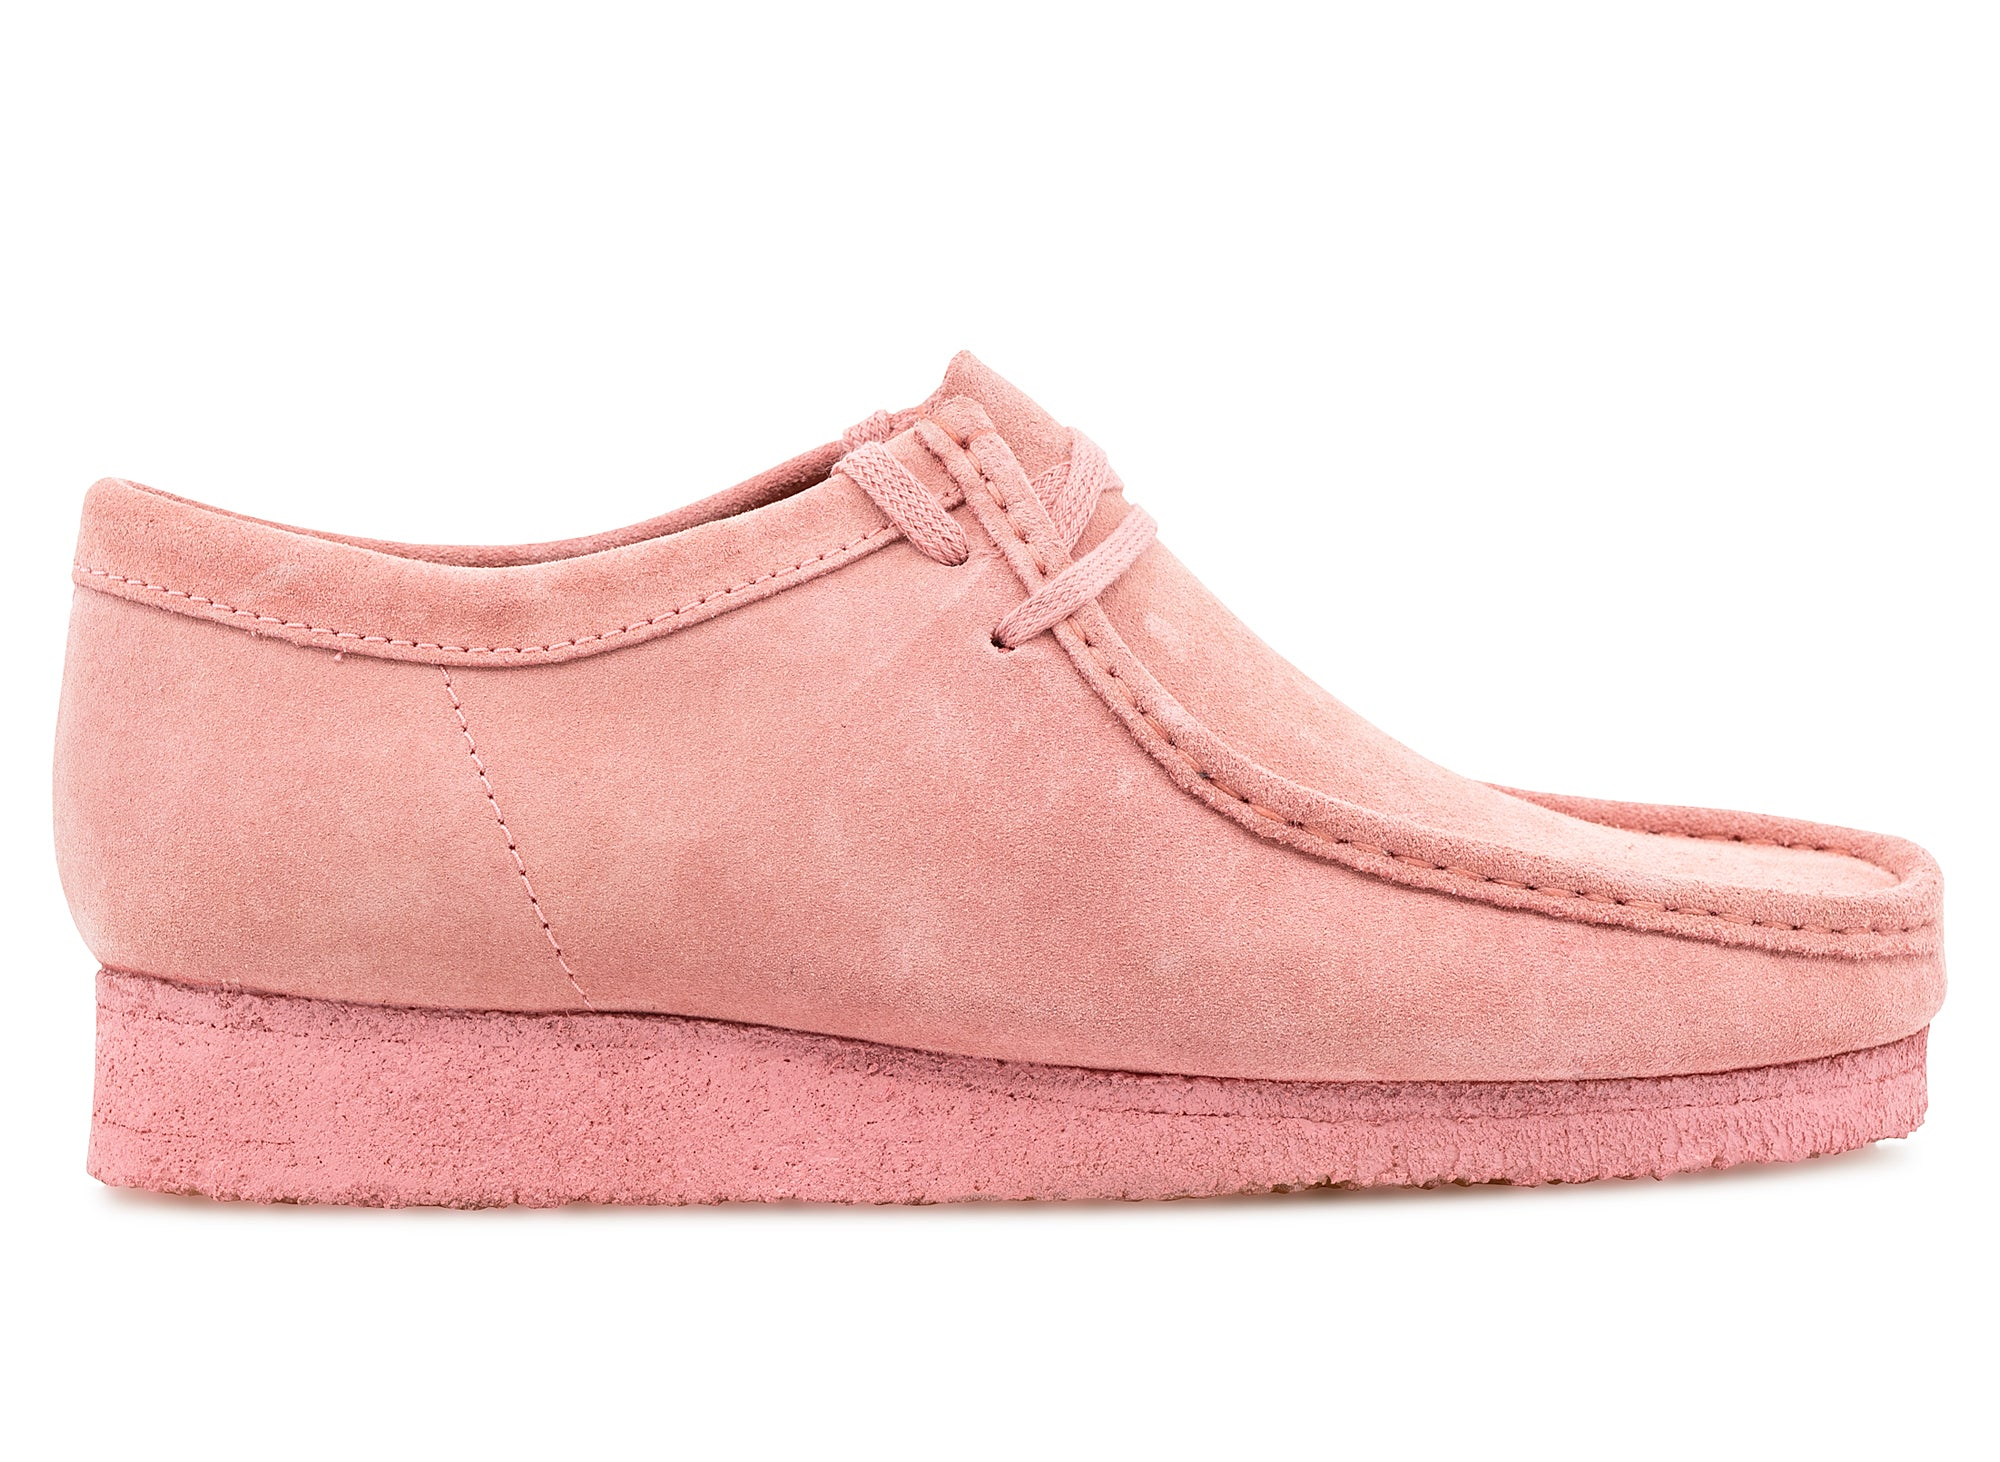 Clarks Wallabee 'Bright Pink' xld